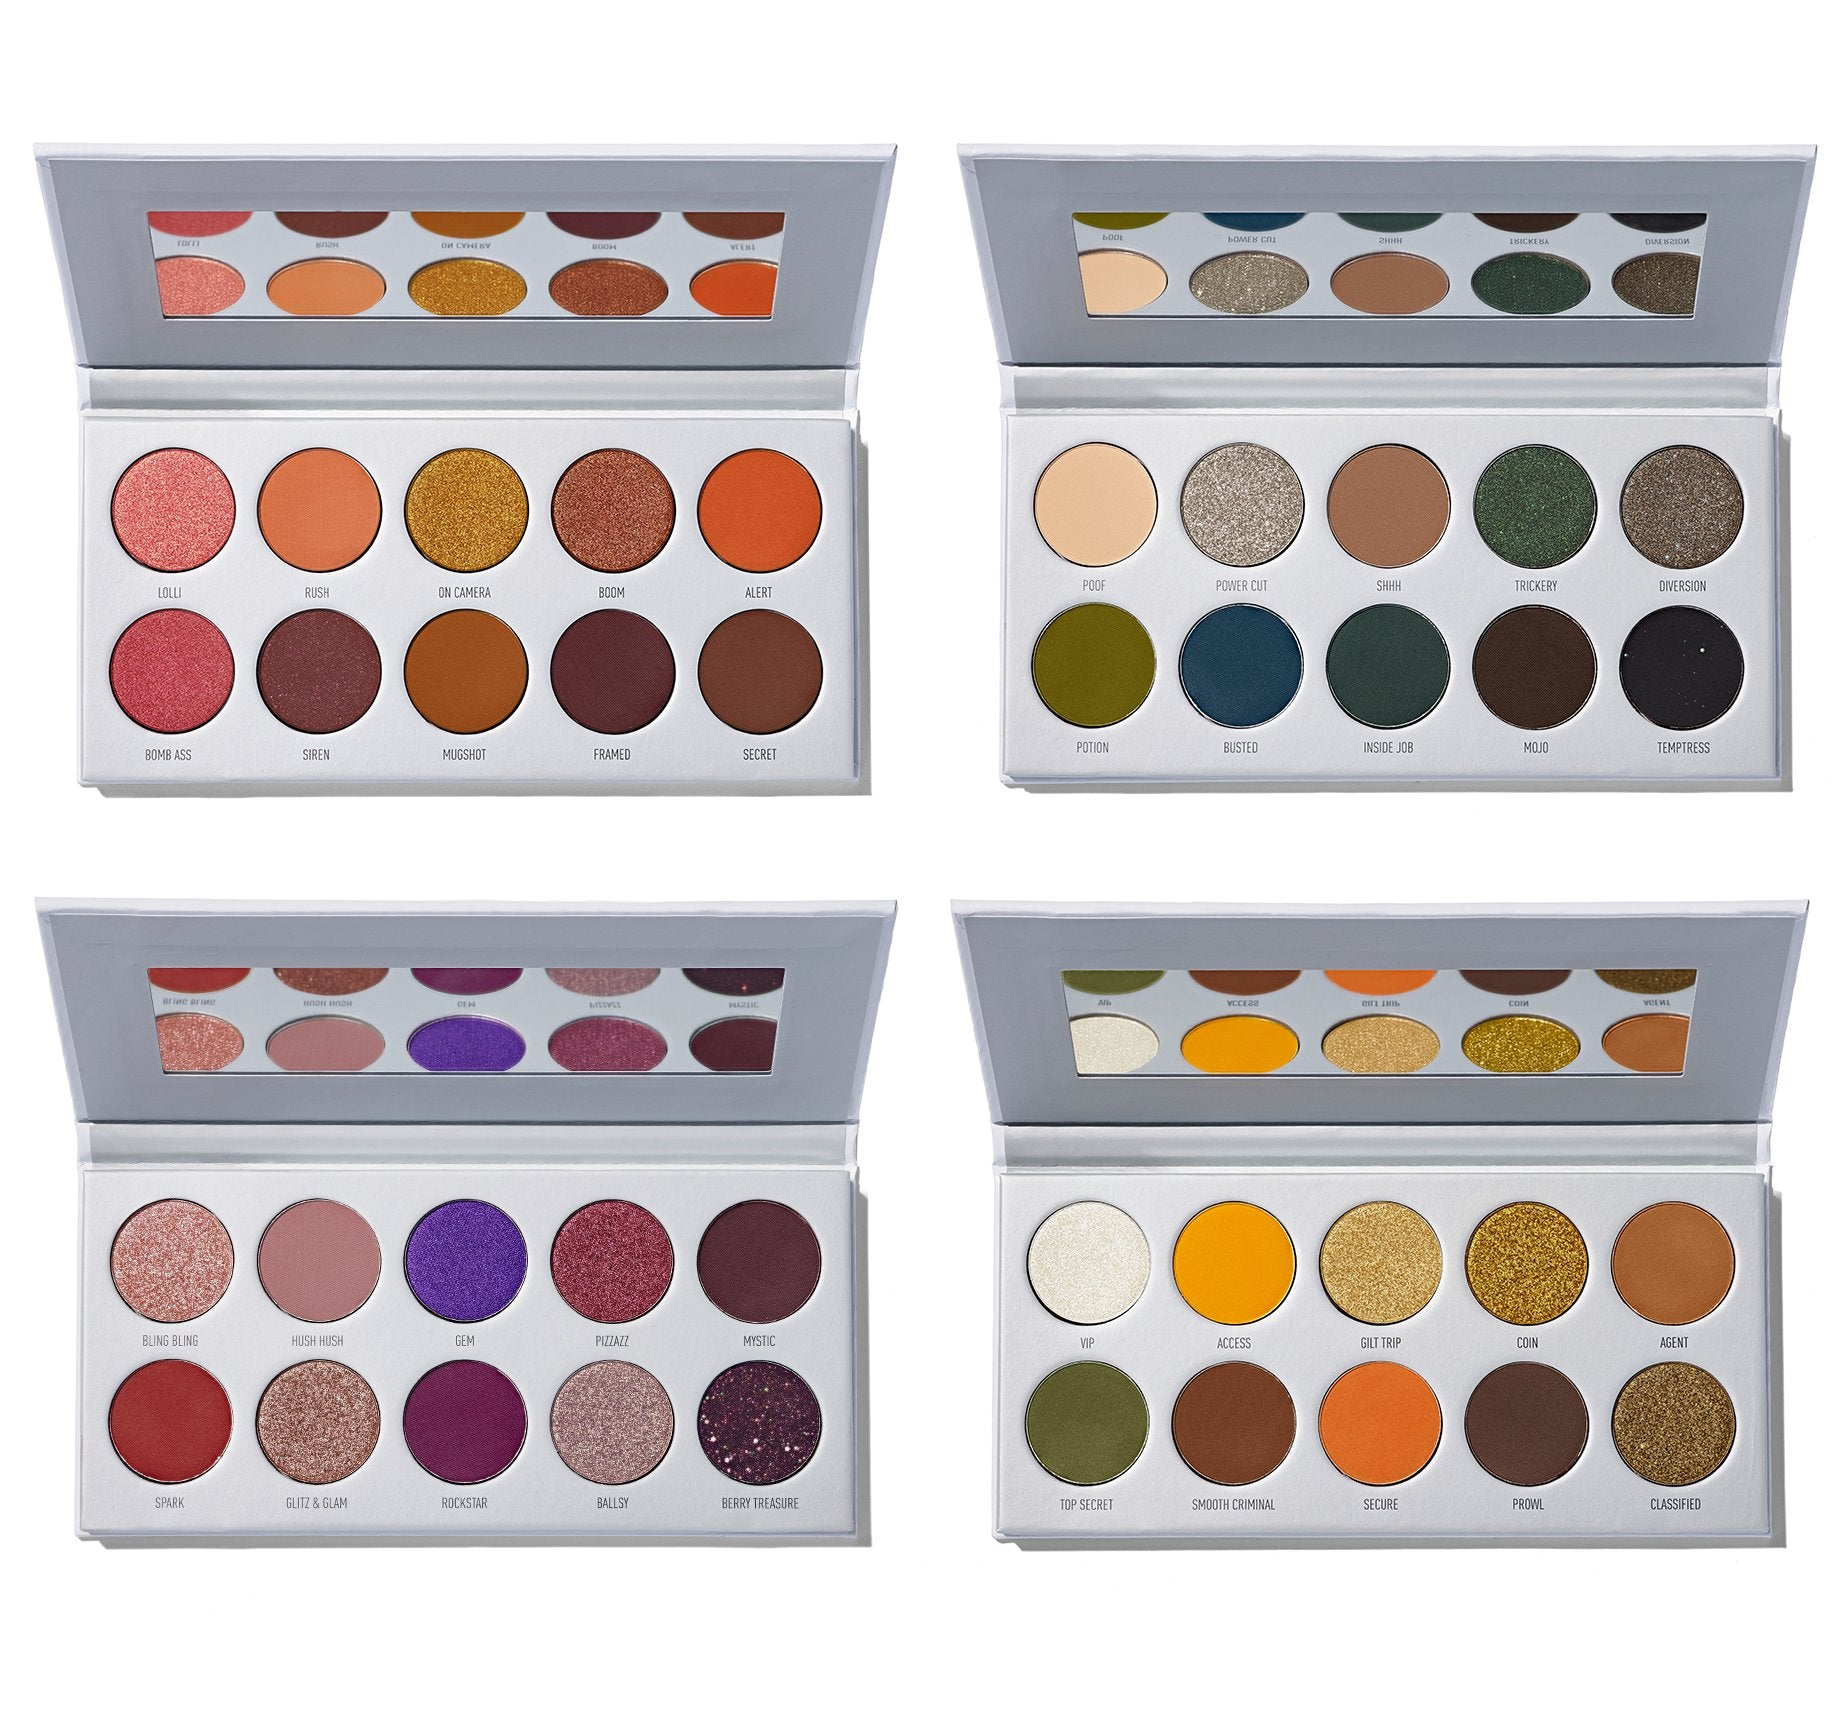 MORPHE X JACLYN HILL THE VAULT – Morphe US